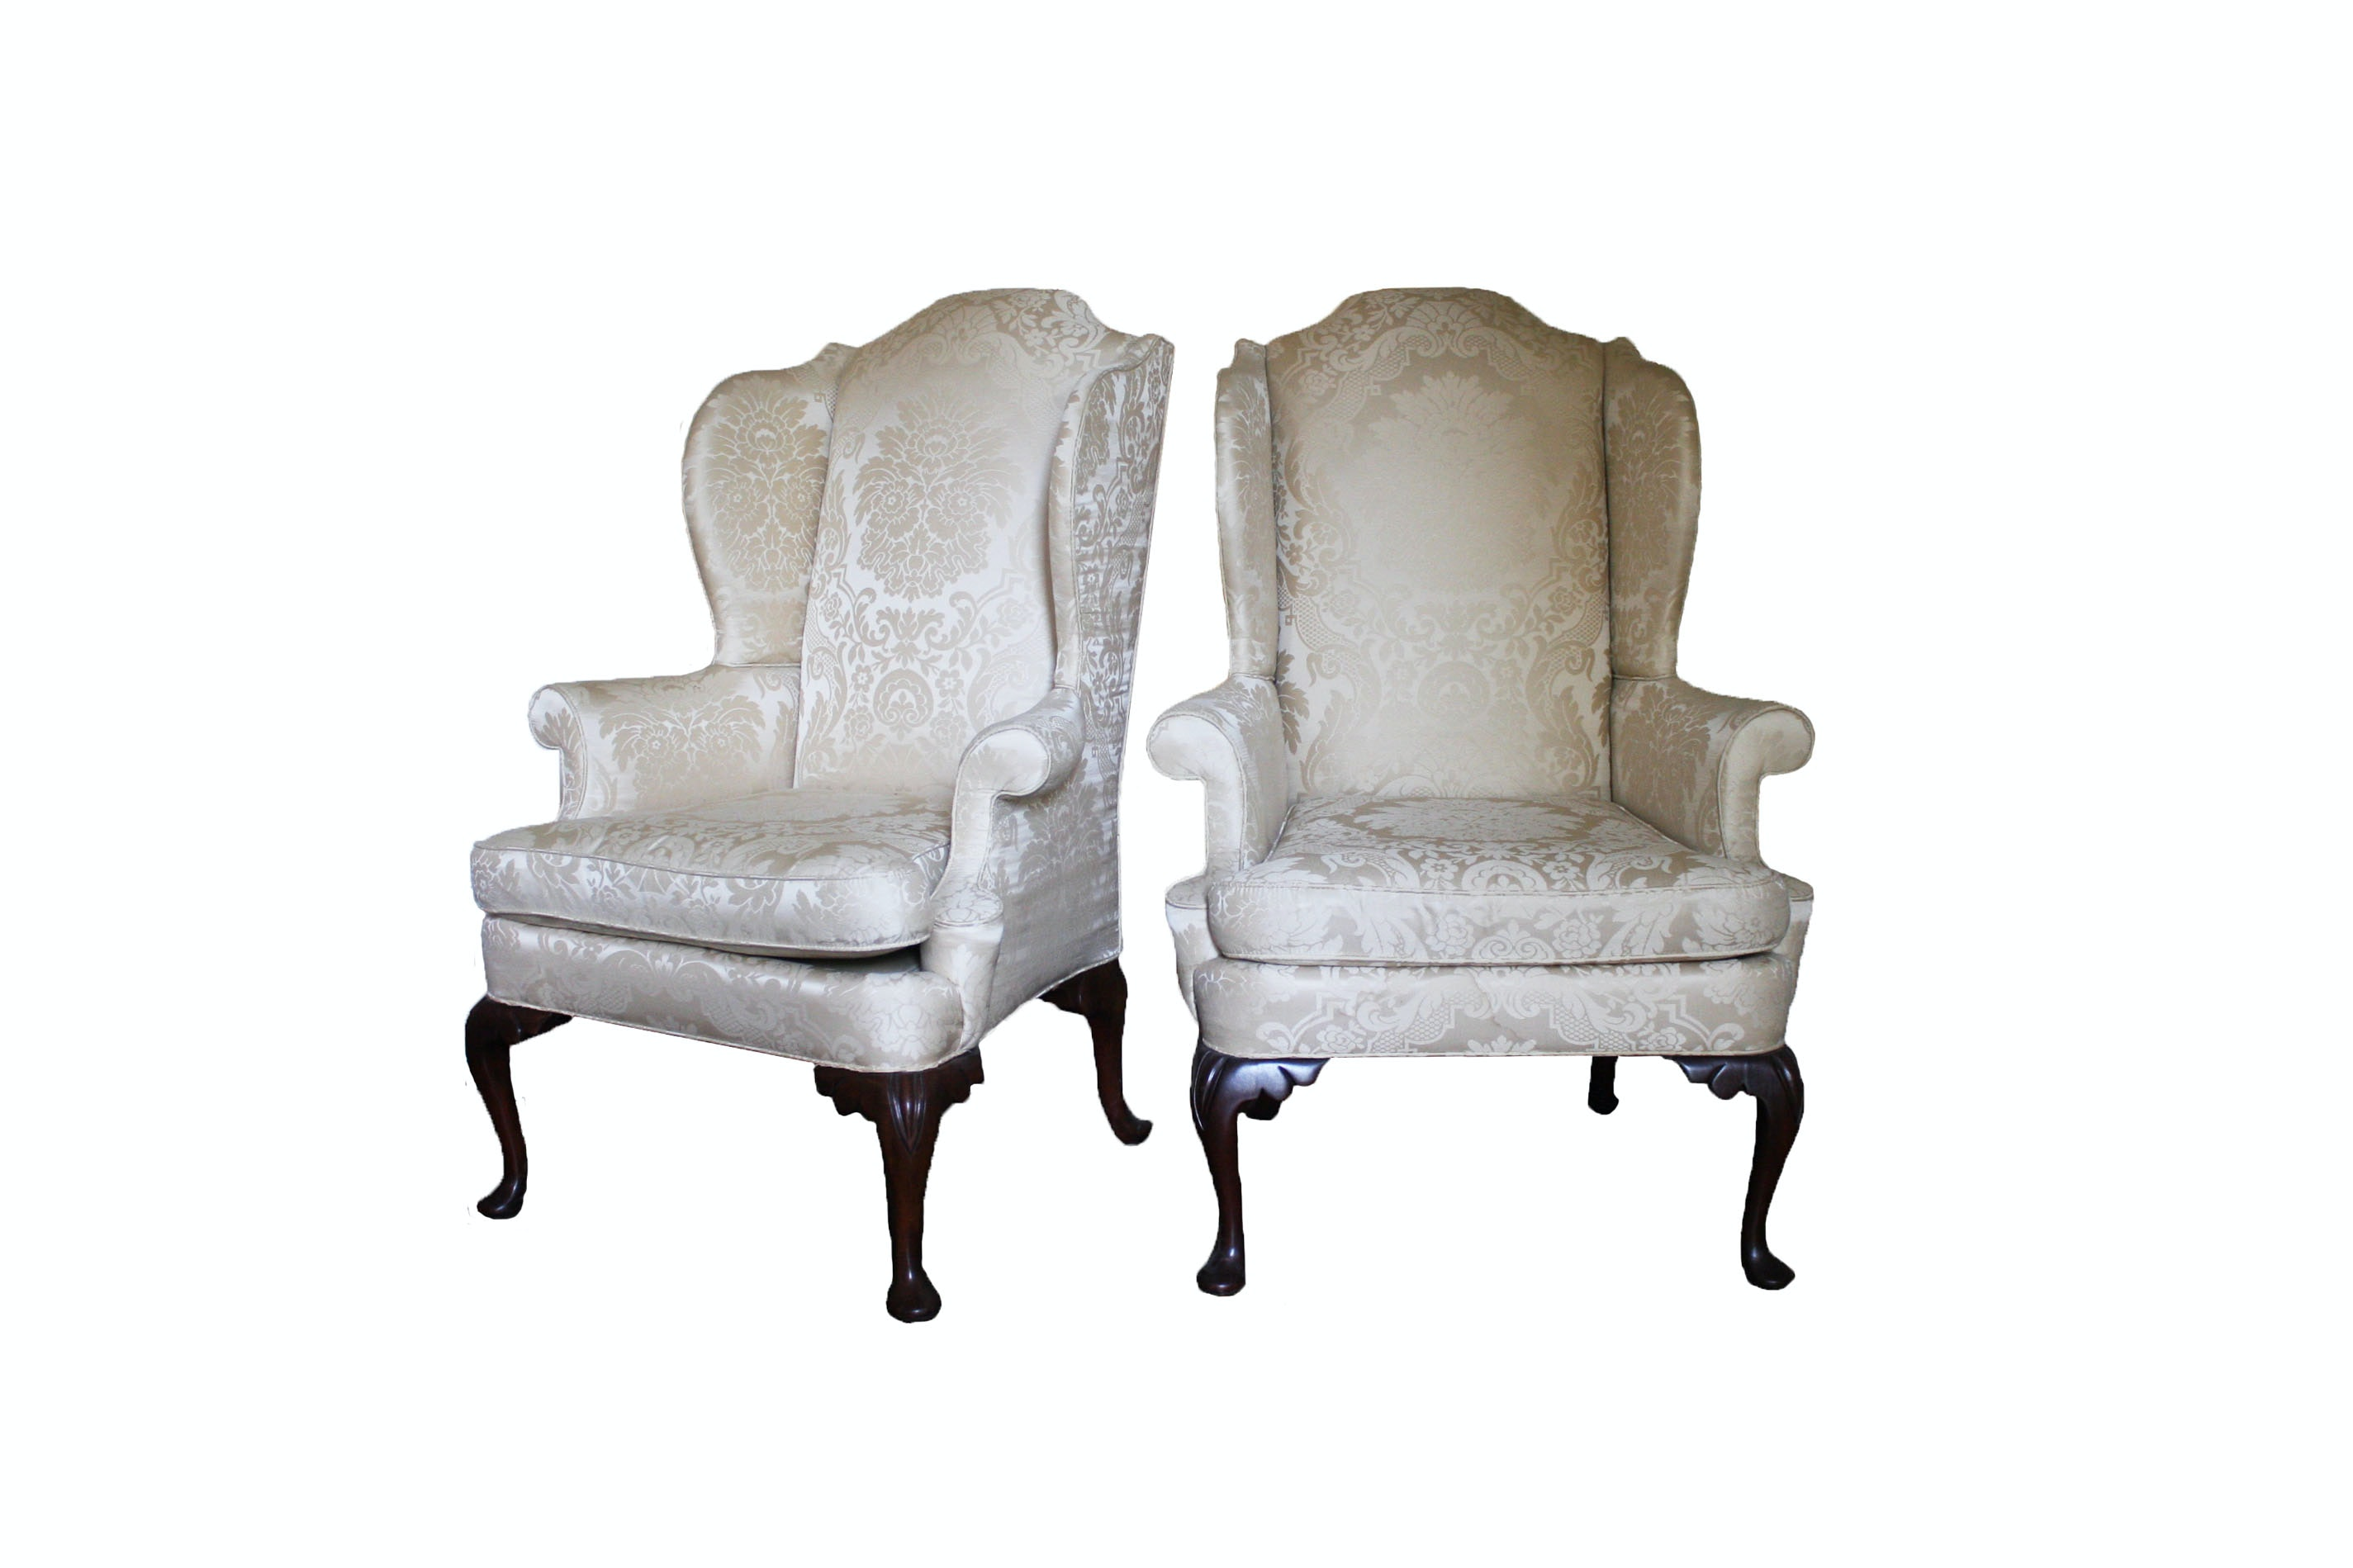 Pair Of Queen Anne Style Wingback Chairs By Hickory Chair ...